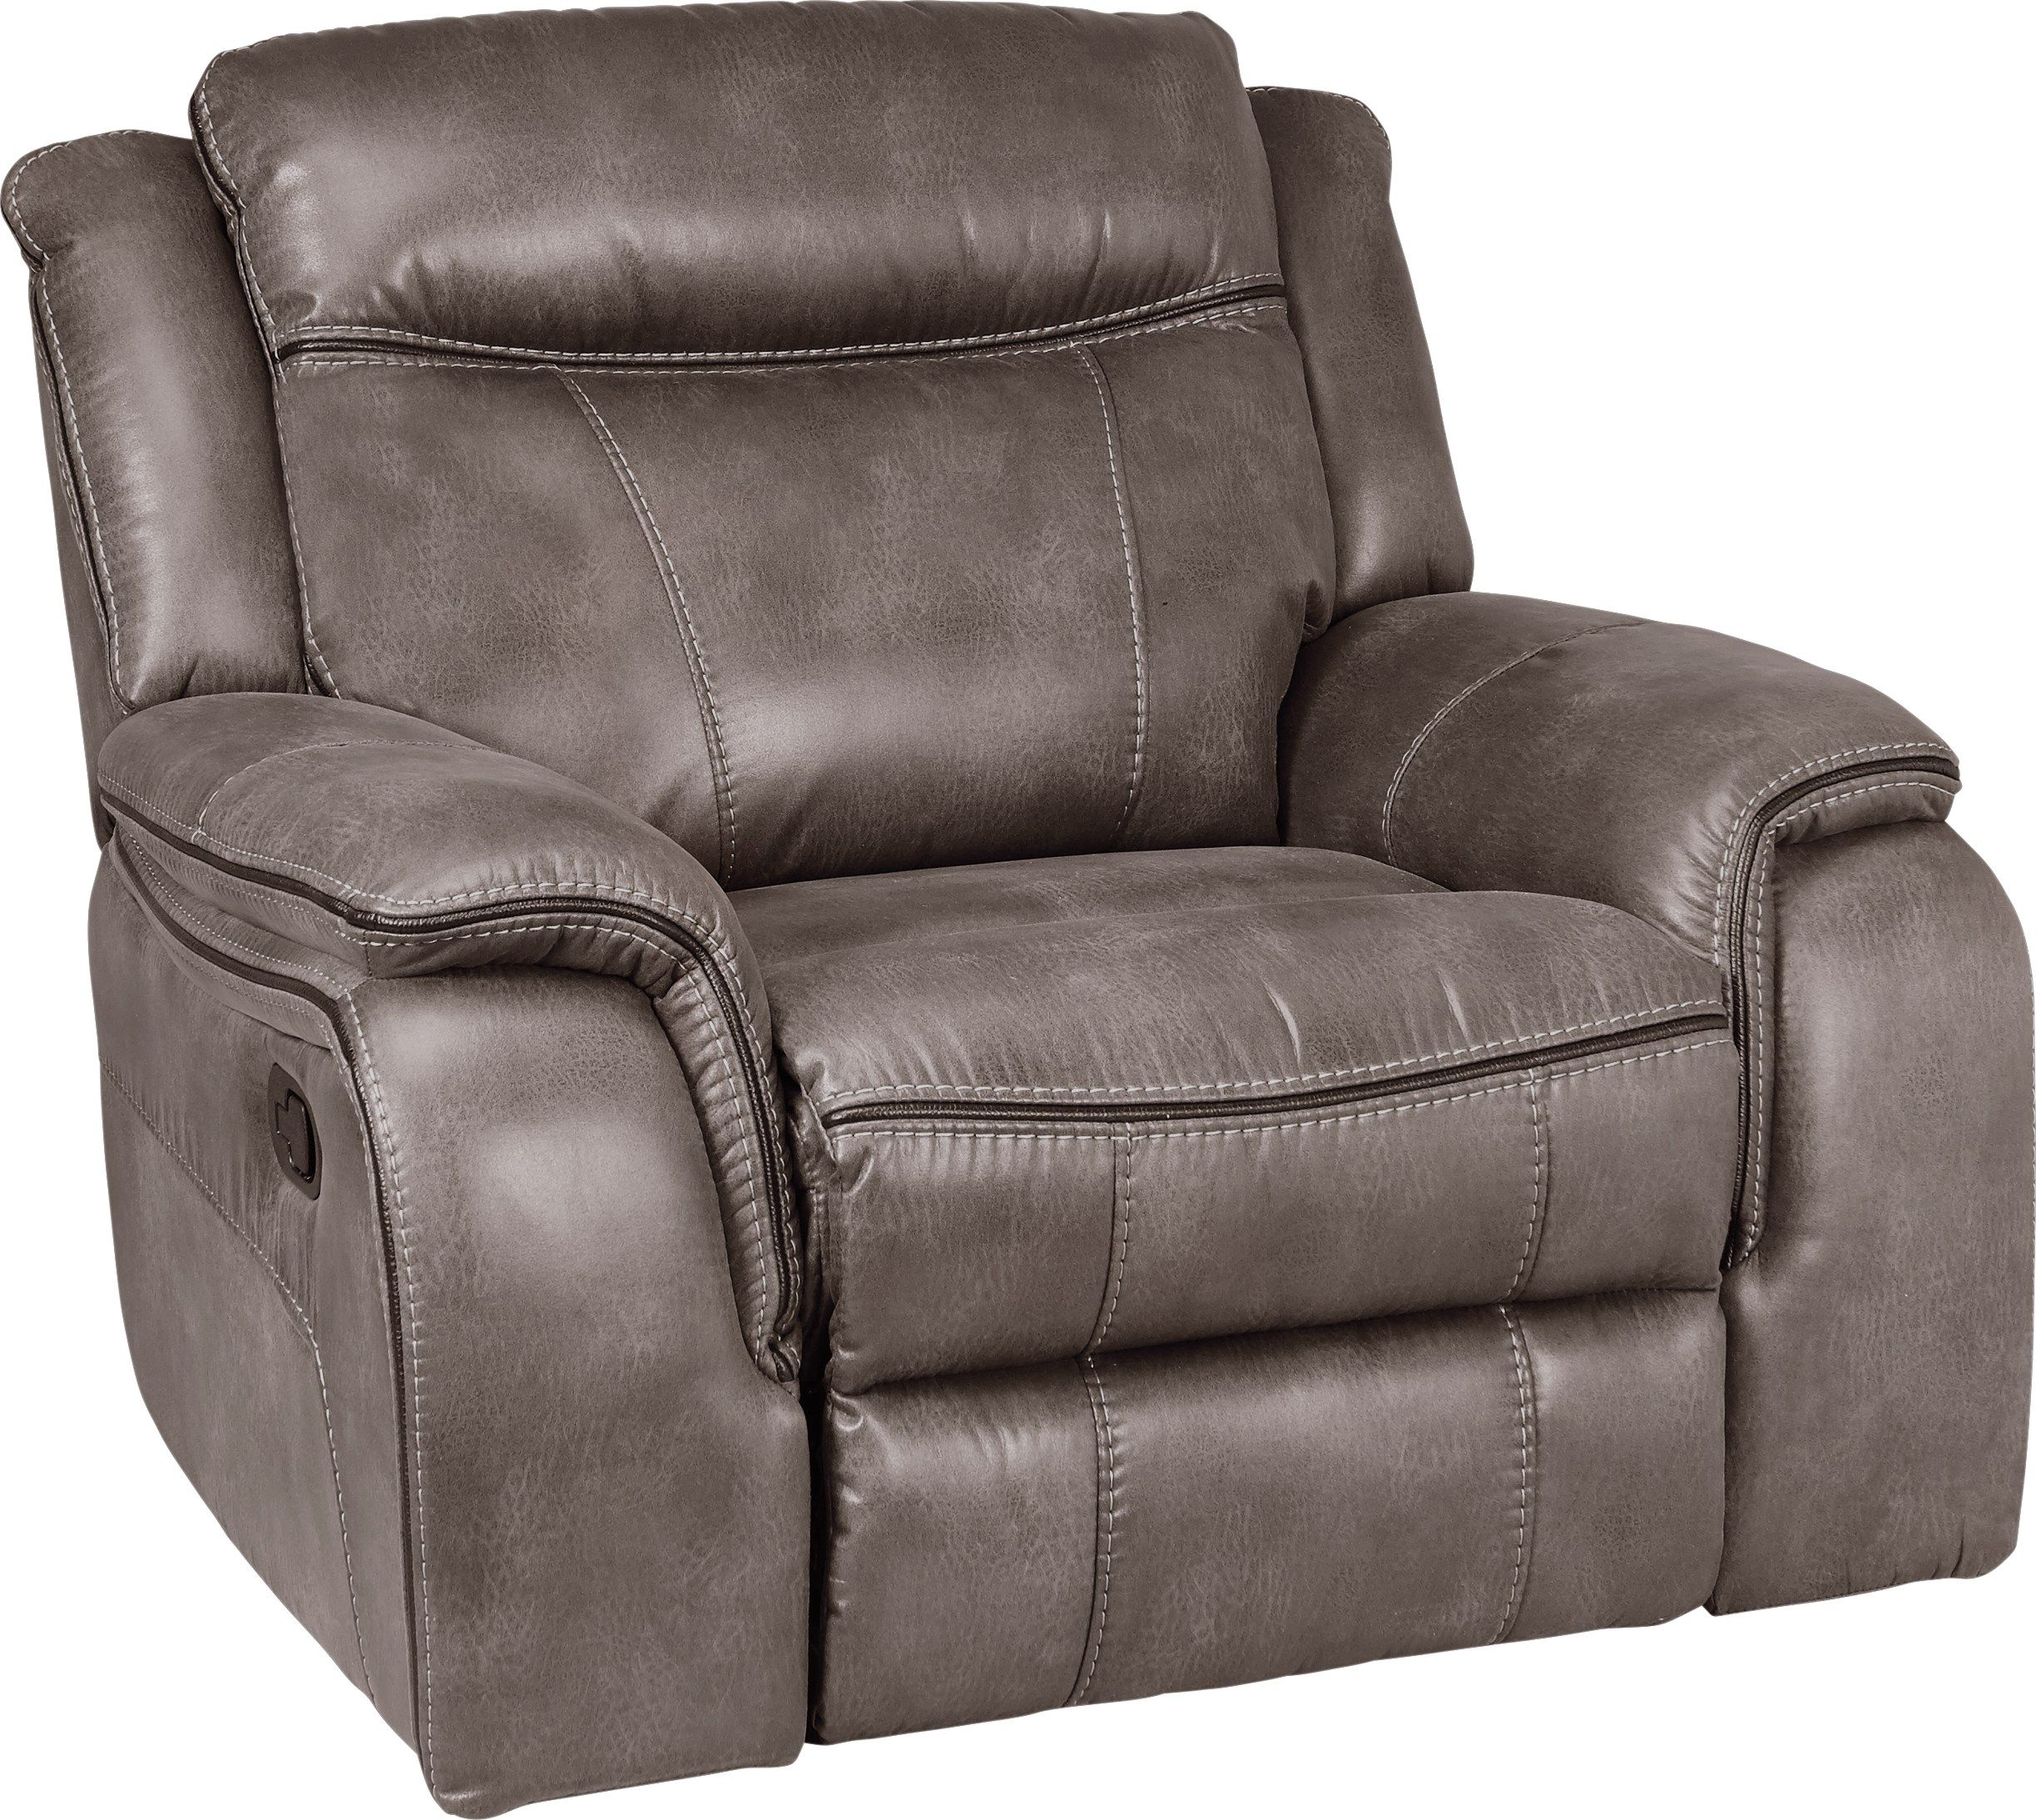 Best Cindy Crawford Home Barton Springs Gray Glider Recliner 640 x 480